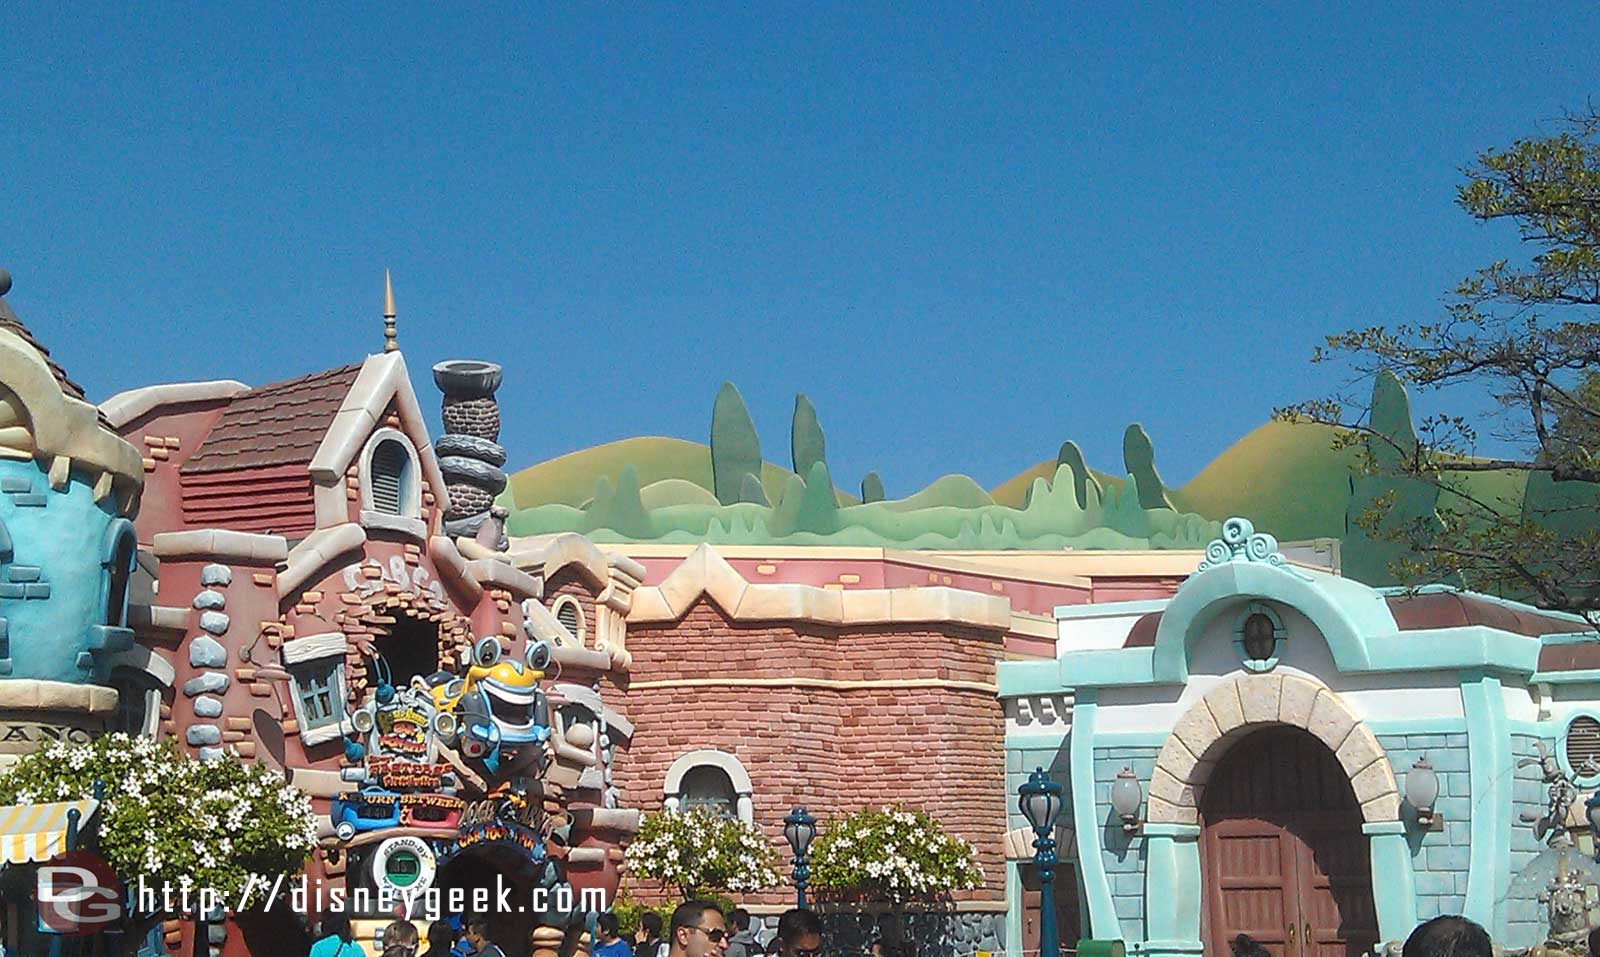 Looks like the hills of Toontown have a new ridge blocking the safety railings.